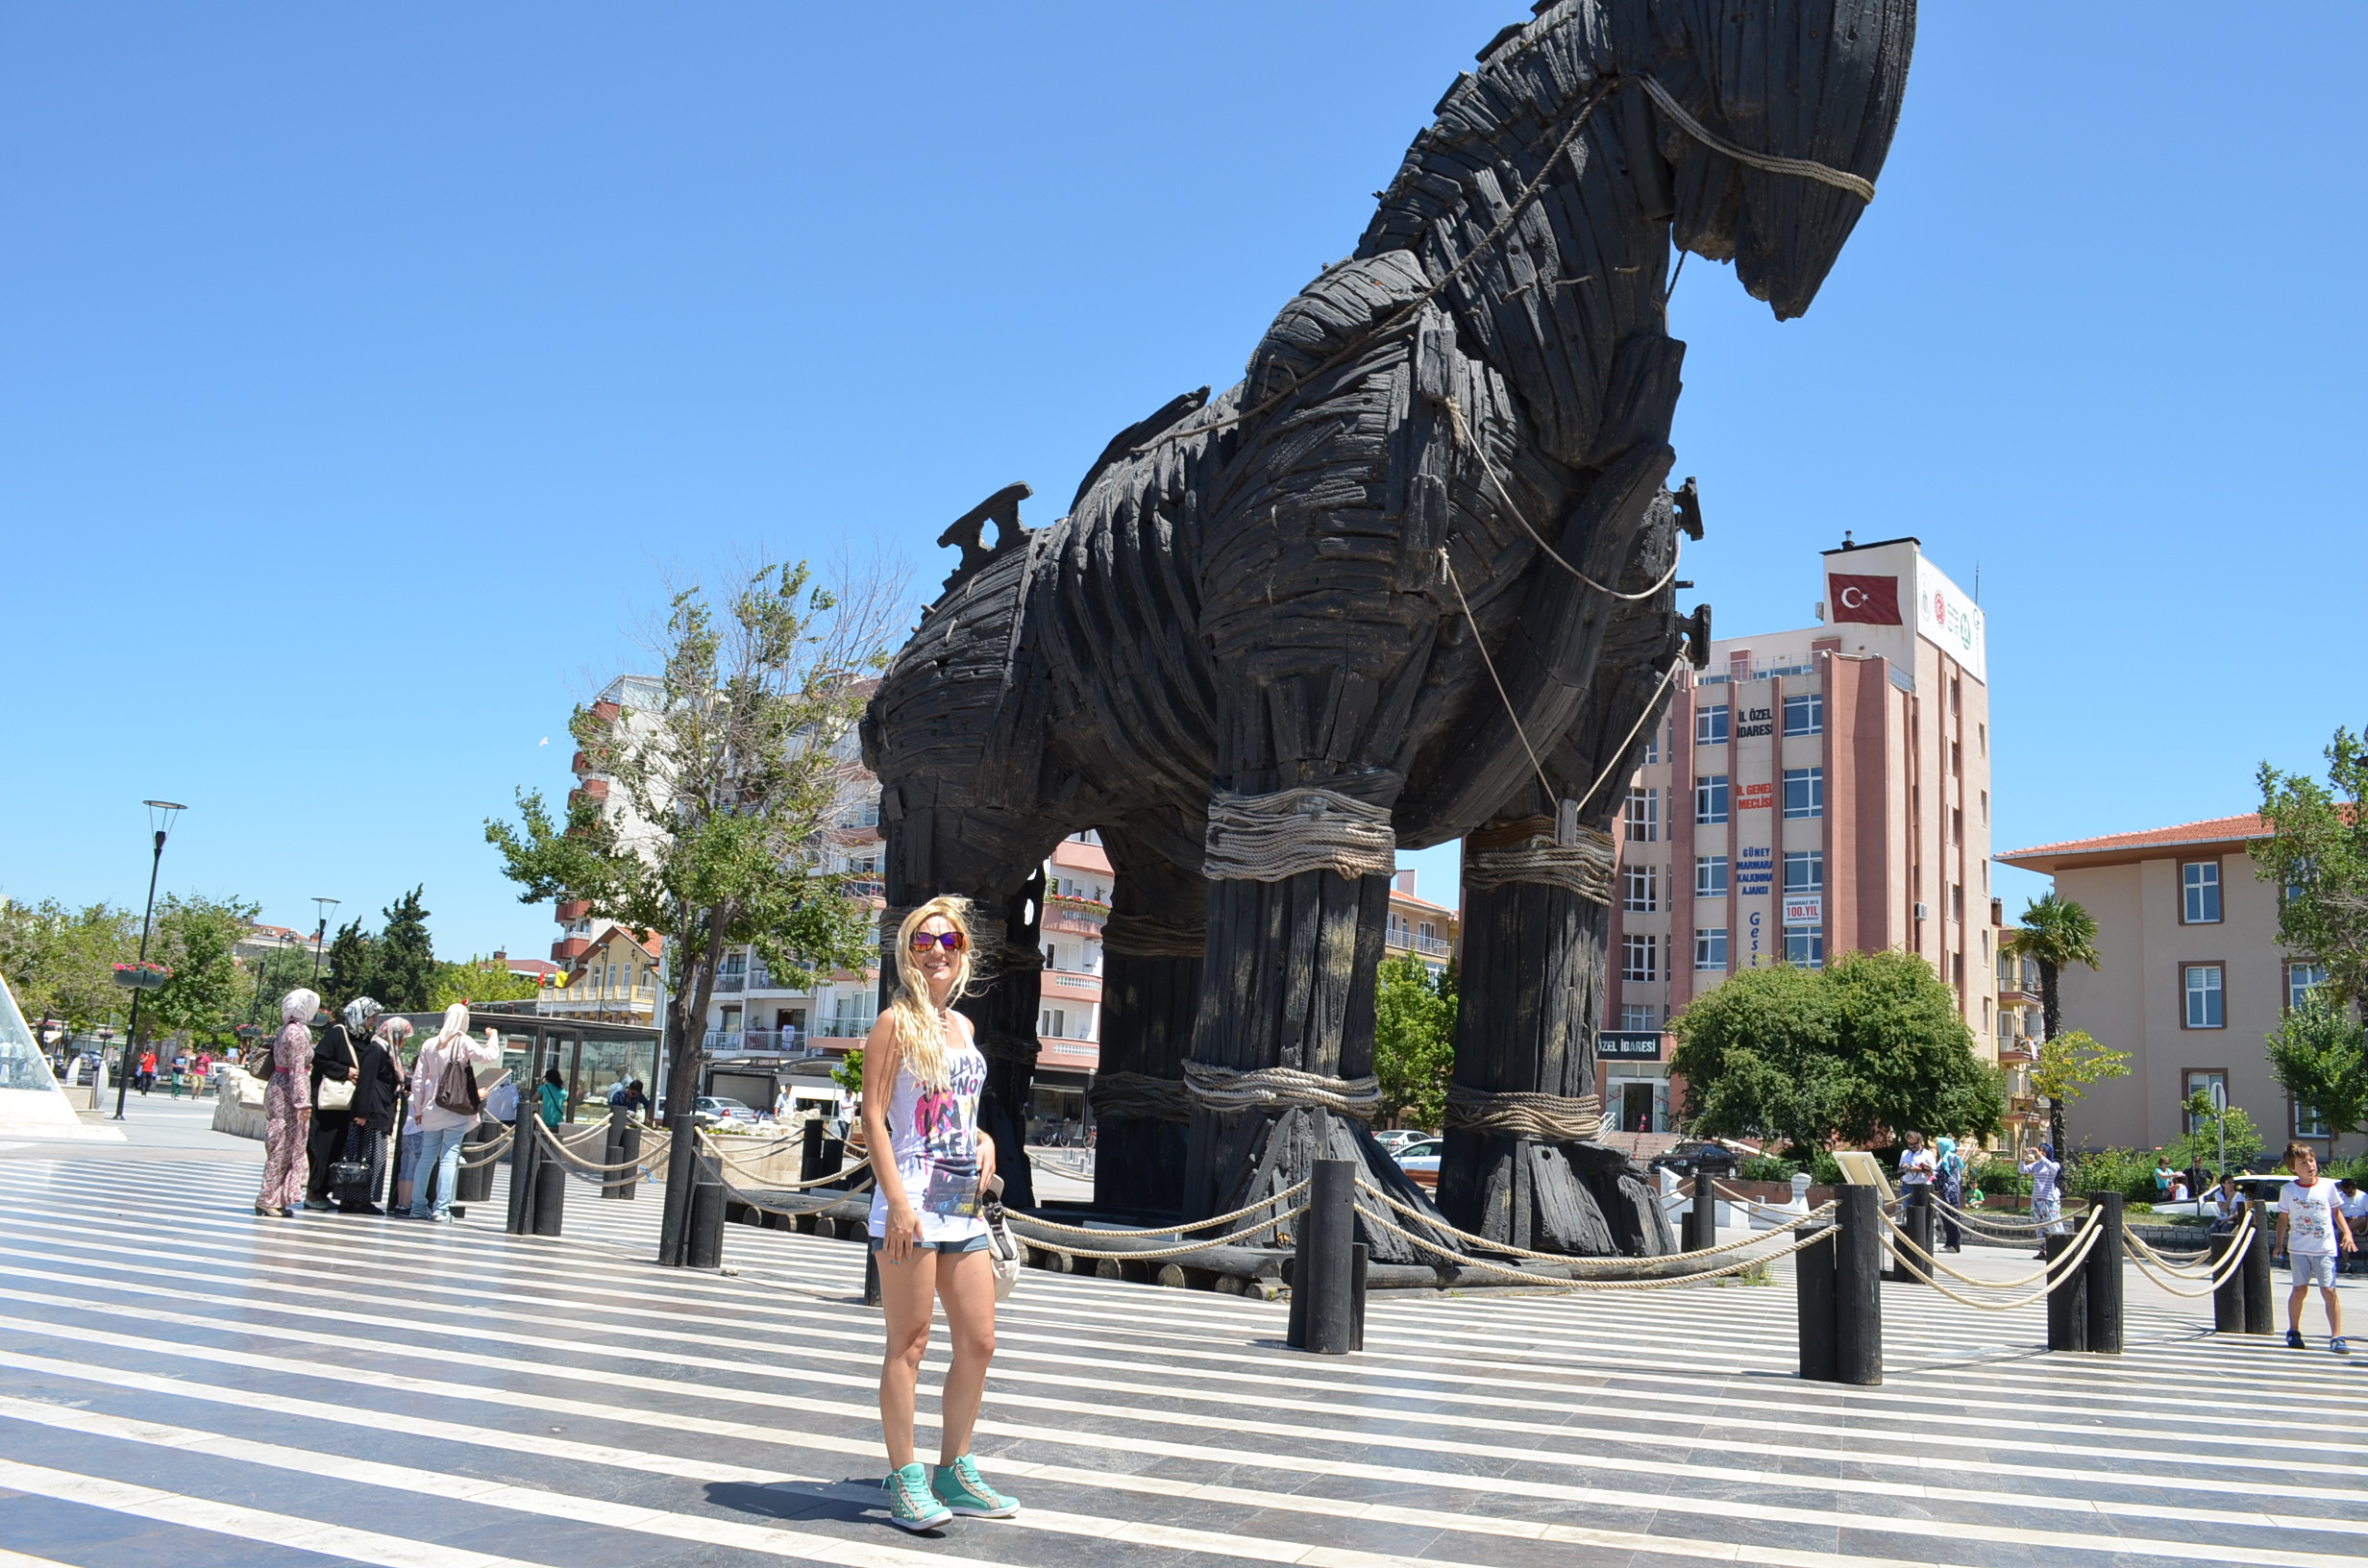 Canakkale Turkey  city photo : ... 15, 2013 2464 × 1632 The Movie famous Trojan Horse Canakkale, Turkey